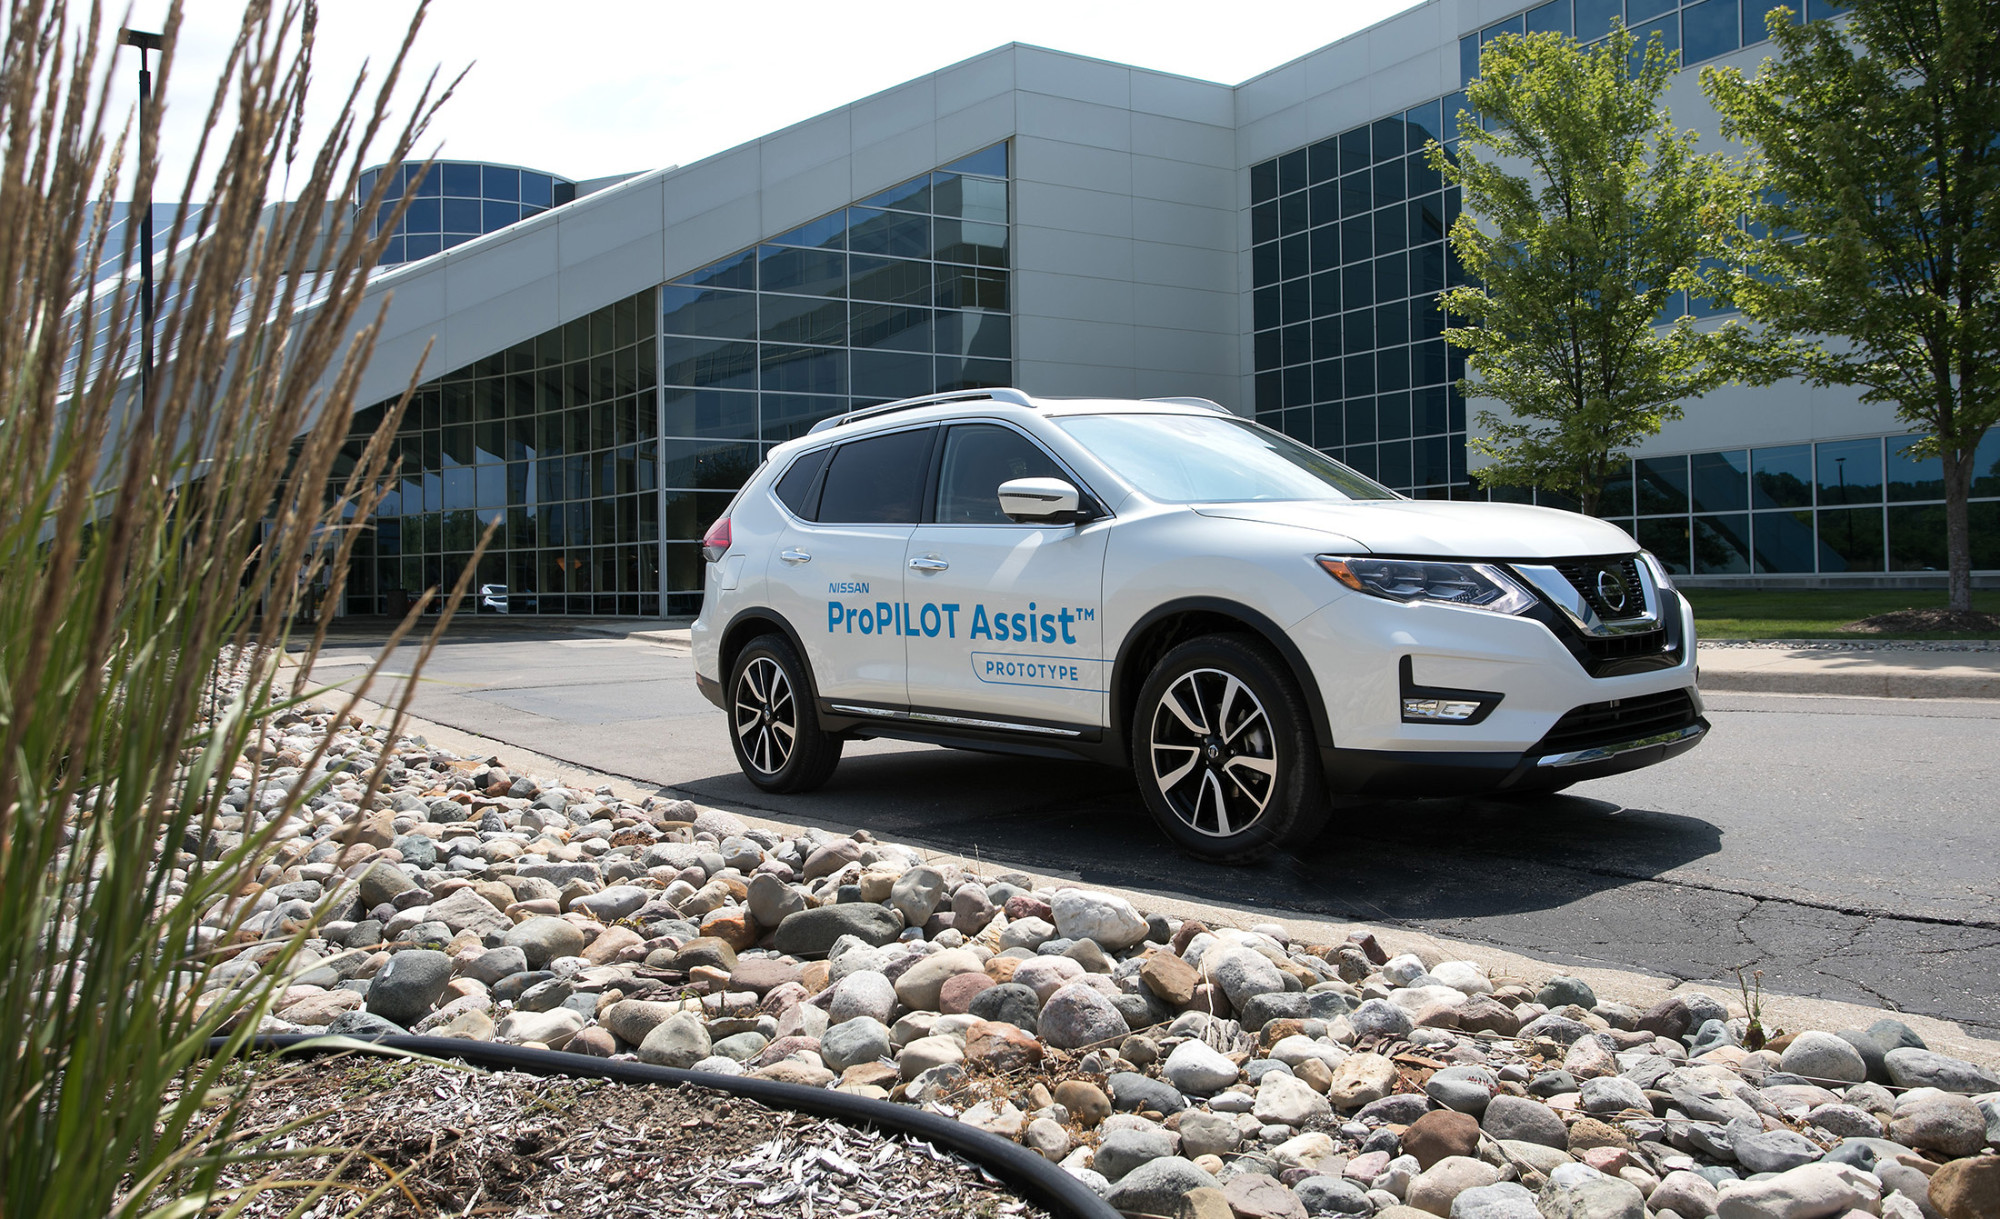 Nissan Brings a Tiny Bit of Self-Driving to the Masses - Bloomberg